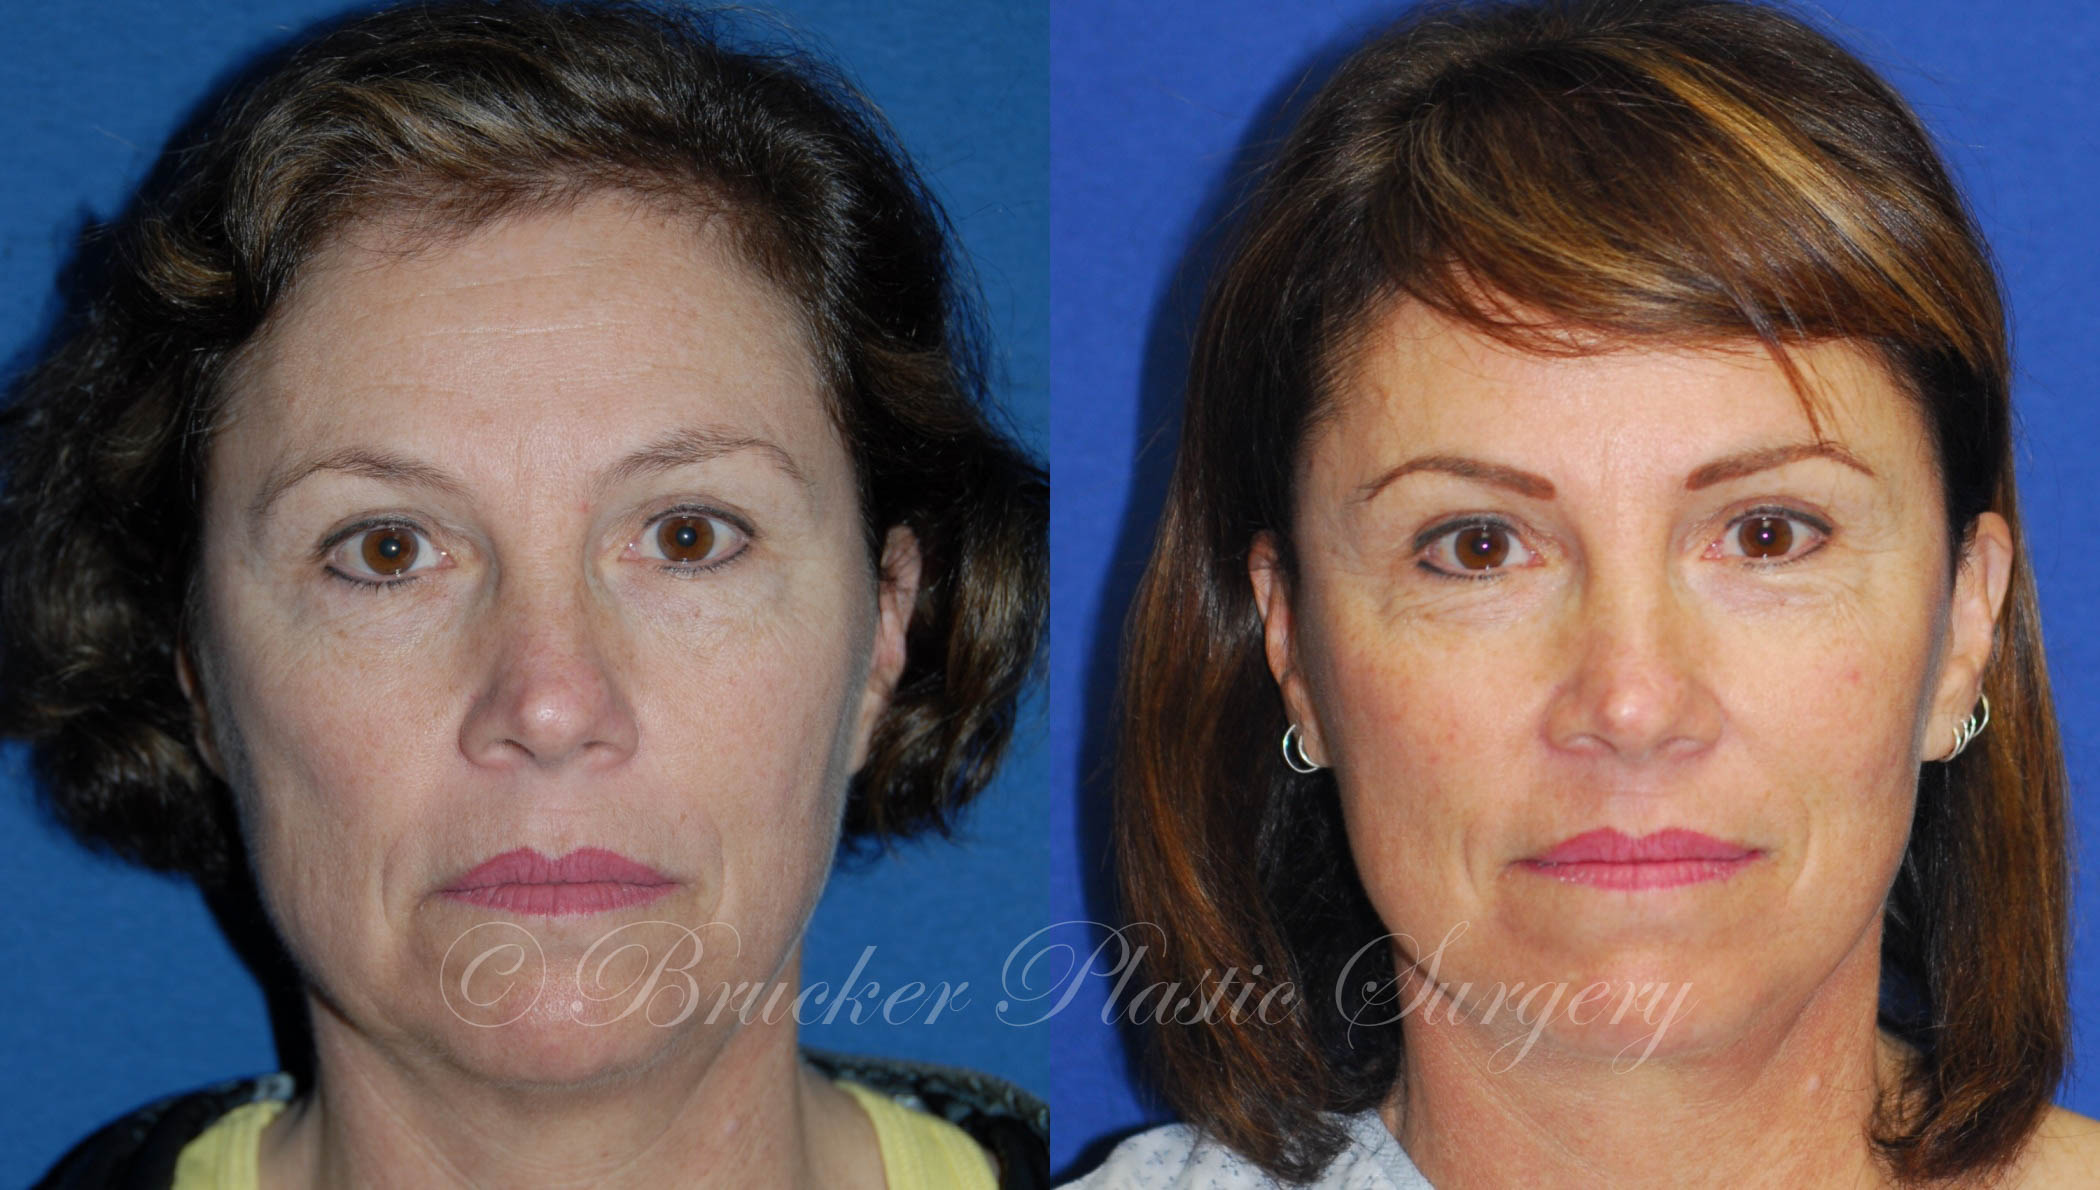 Facelift La Jolla Patient 2